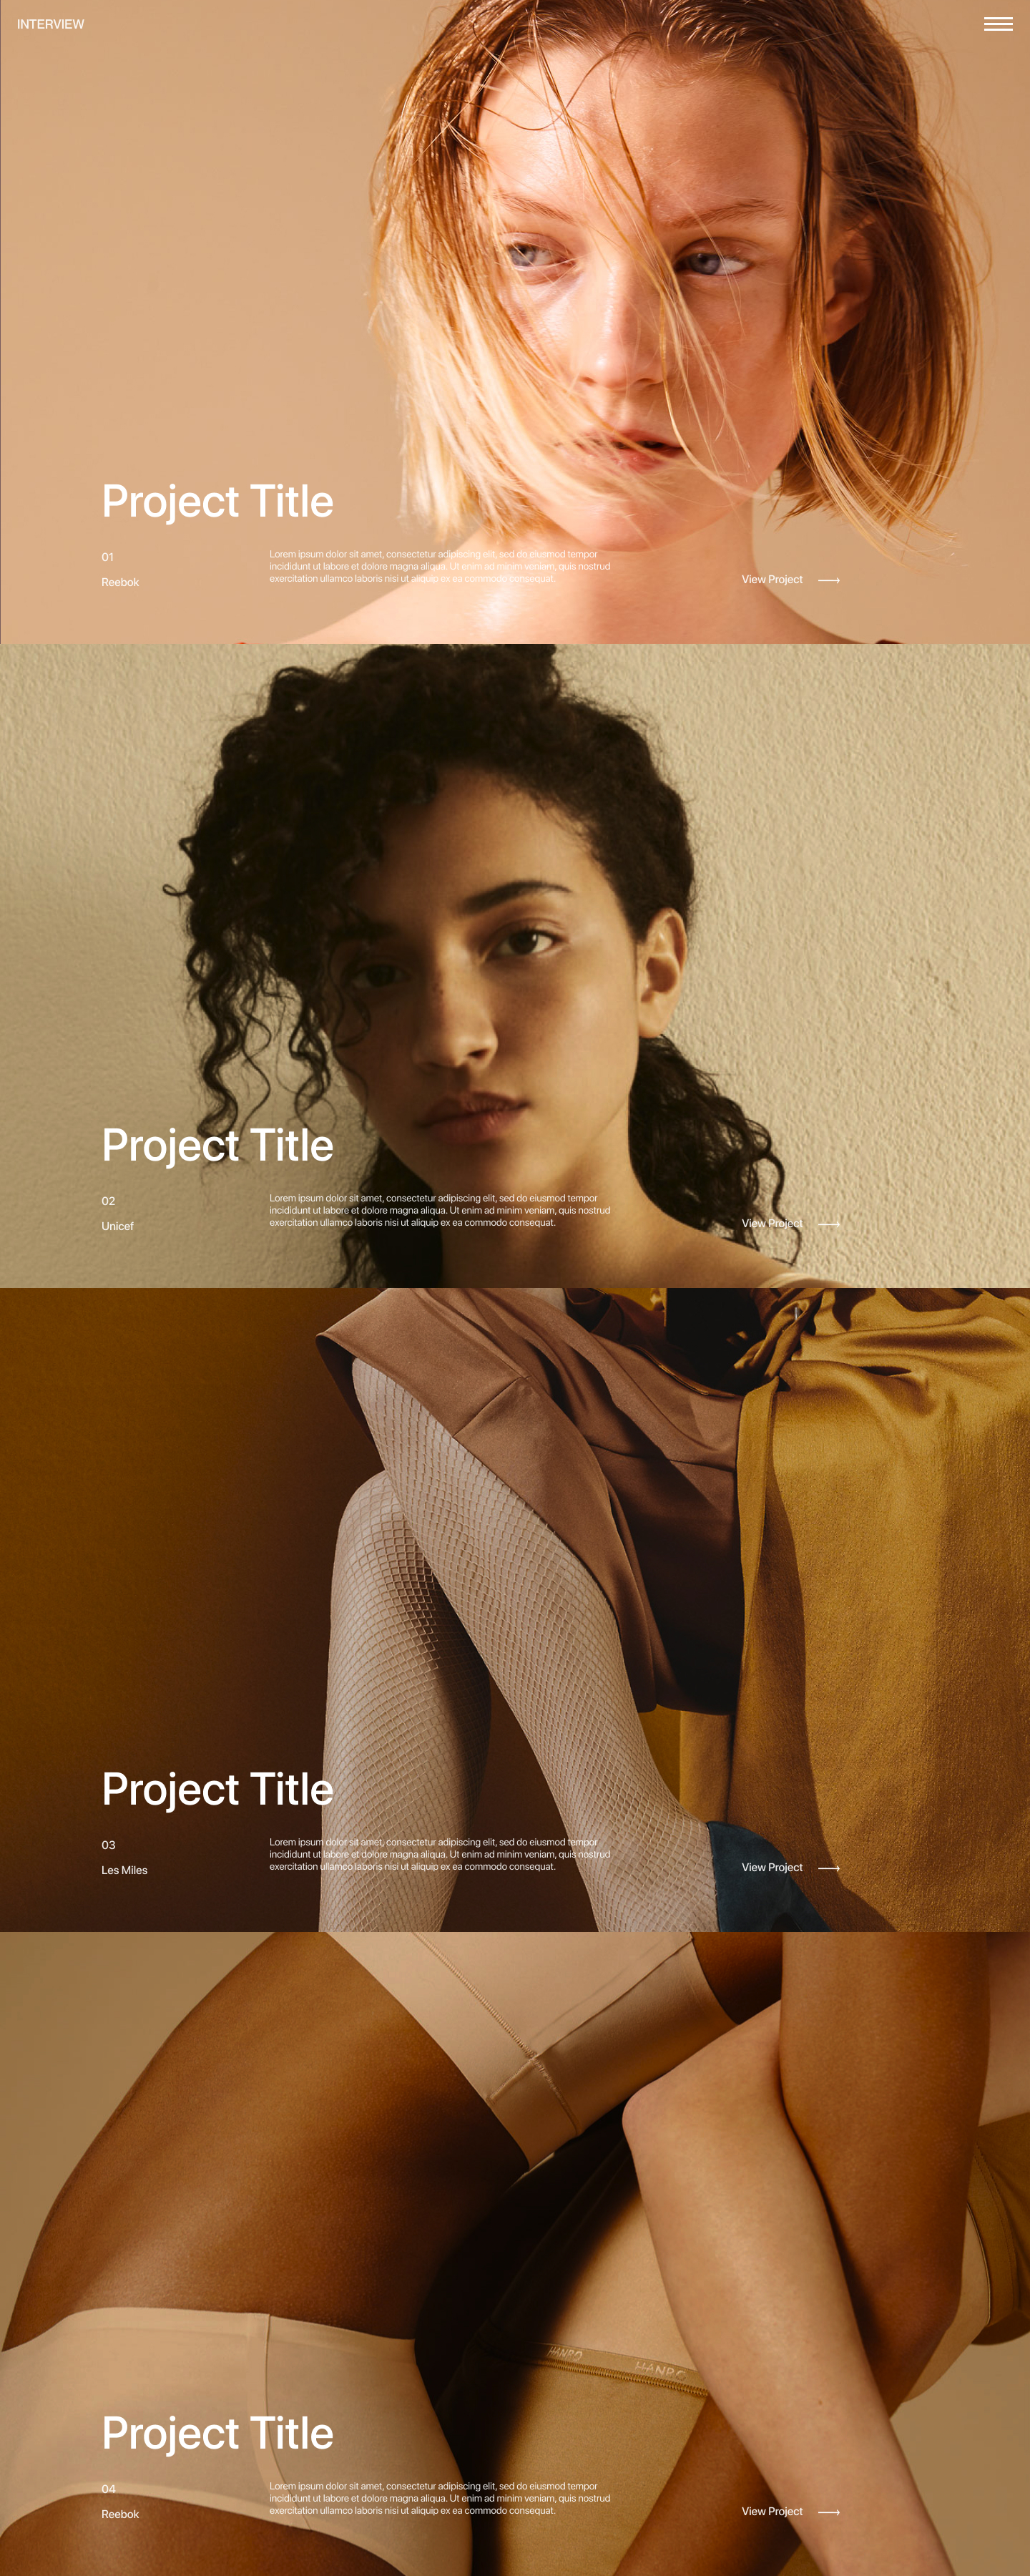 Interview Web Design Free Landing Page for Figma - A simple way to quickly create a new portfolio. Elegant and clean template, modern & clean look.